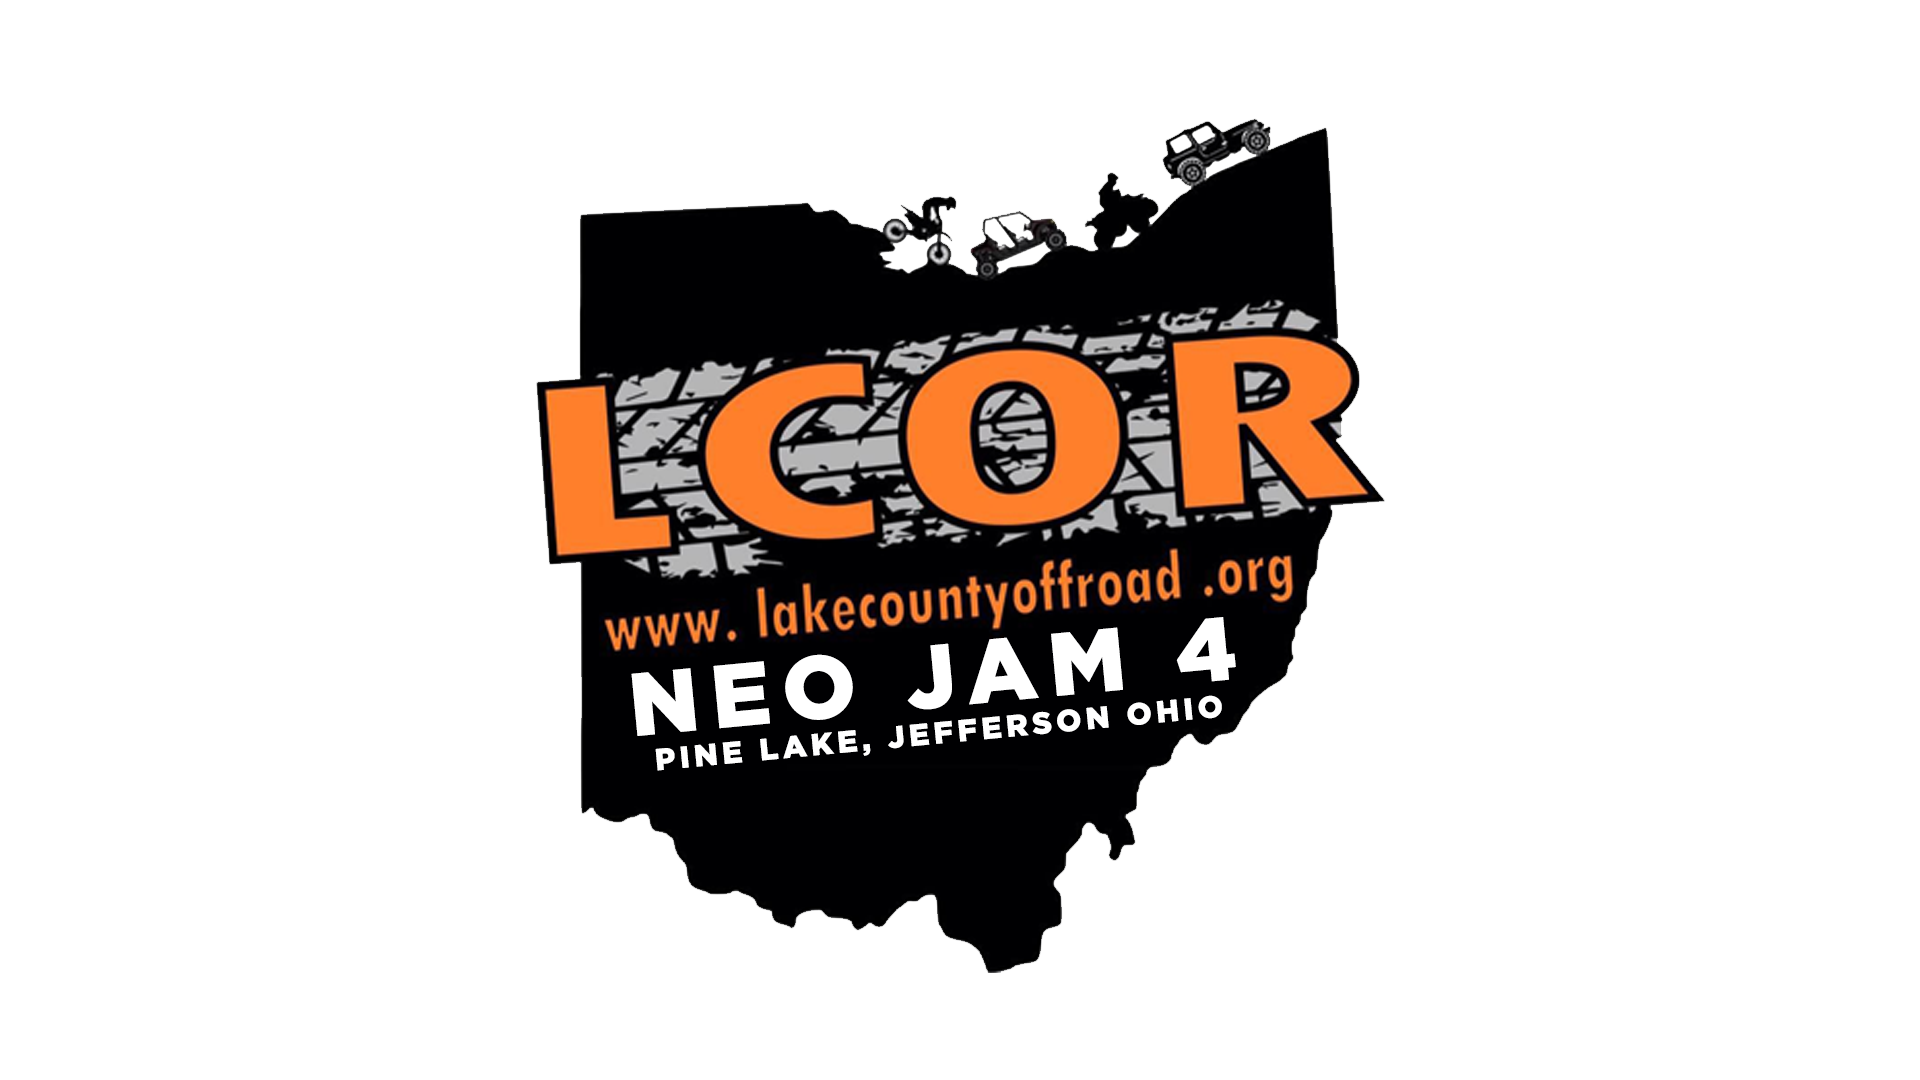 Lake County Offroad NEO Jam 4